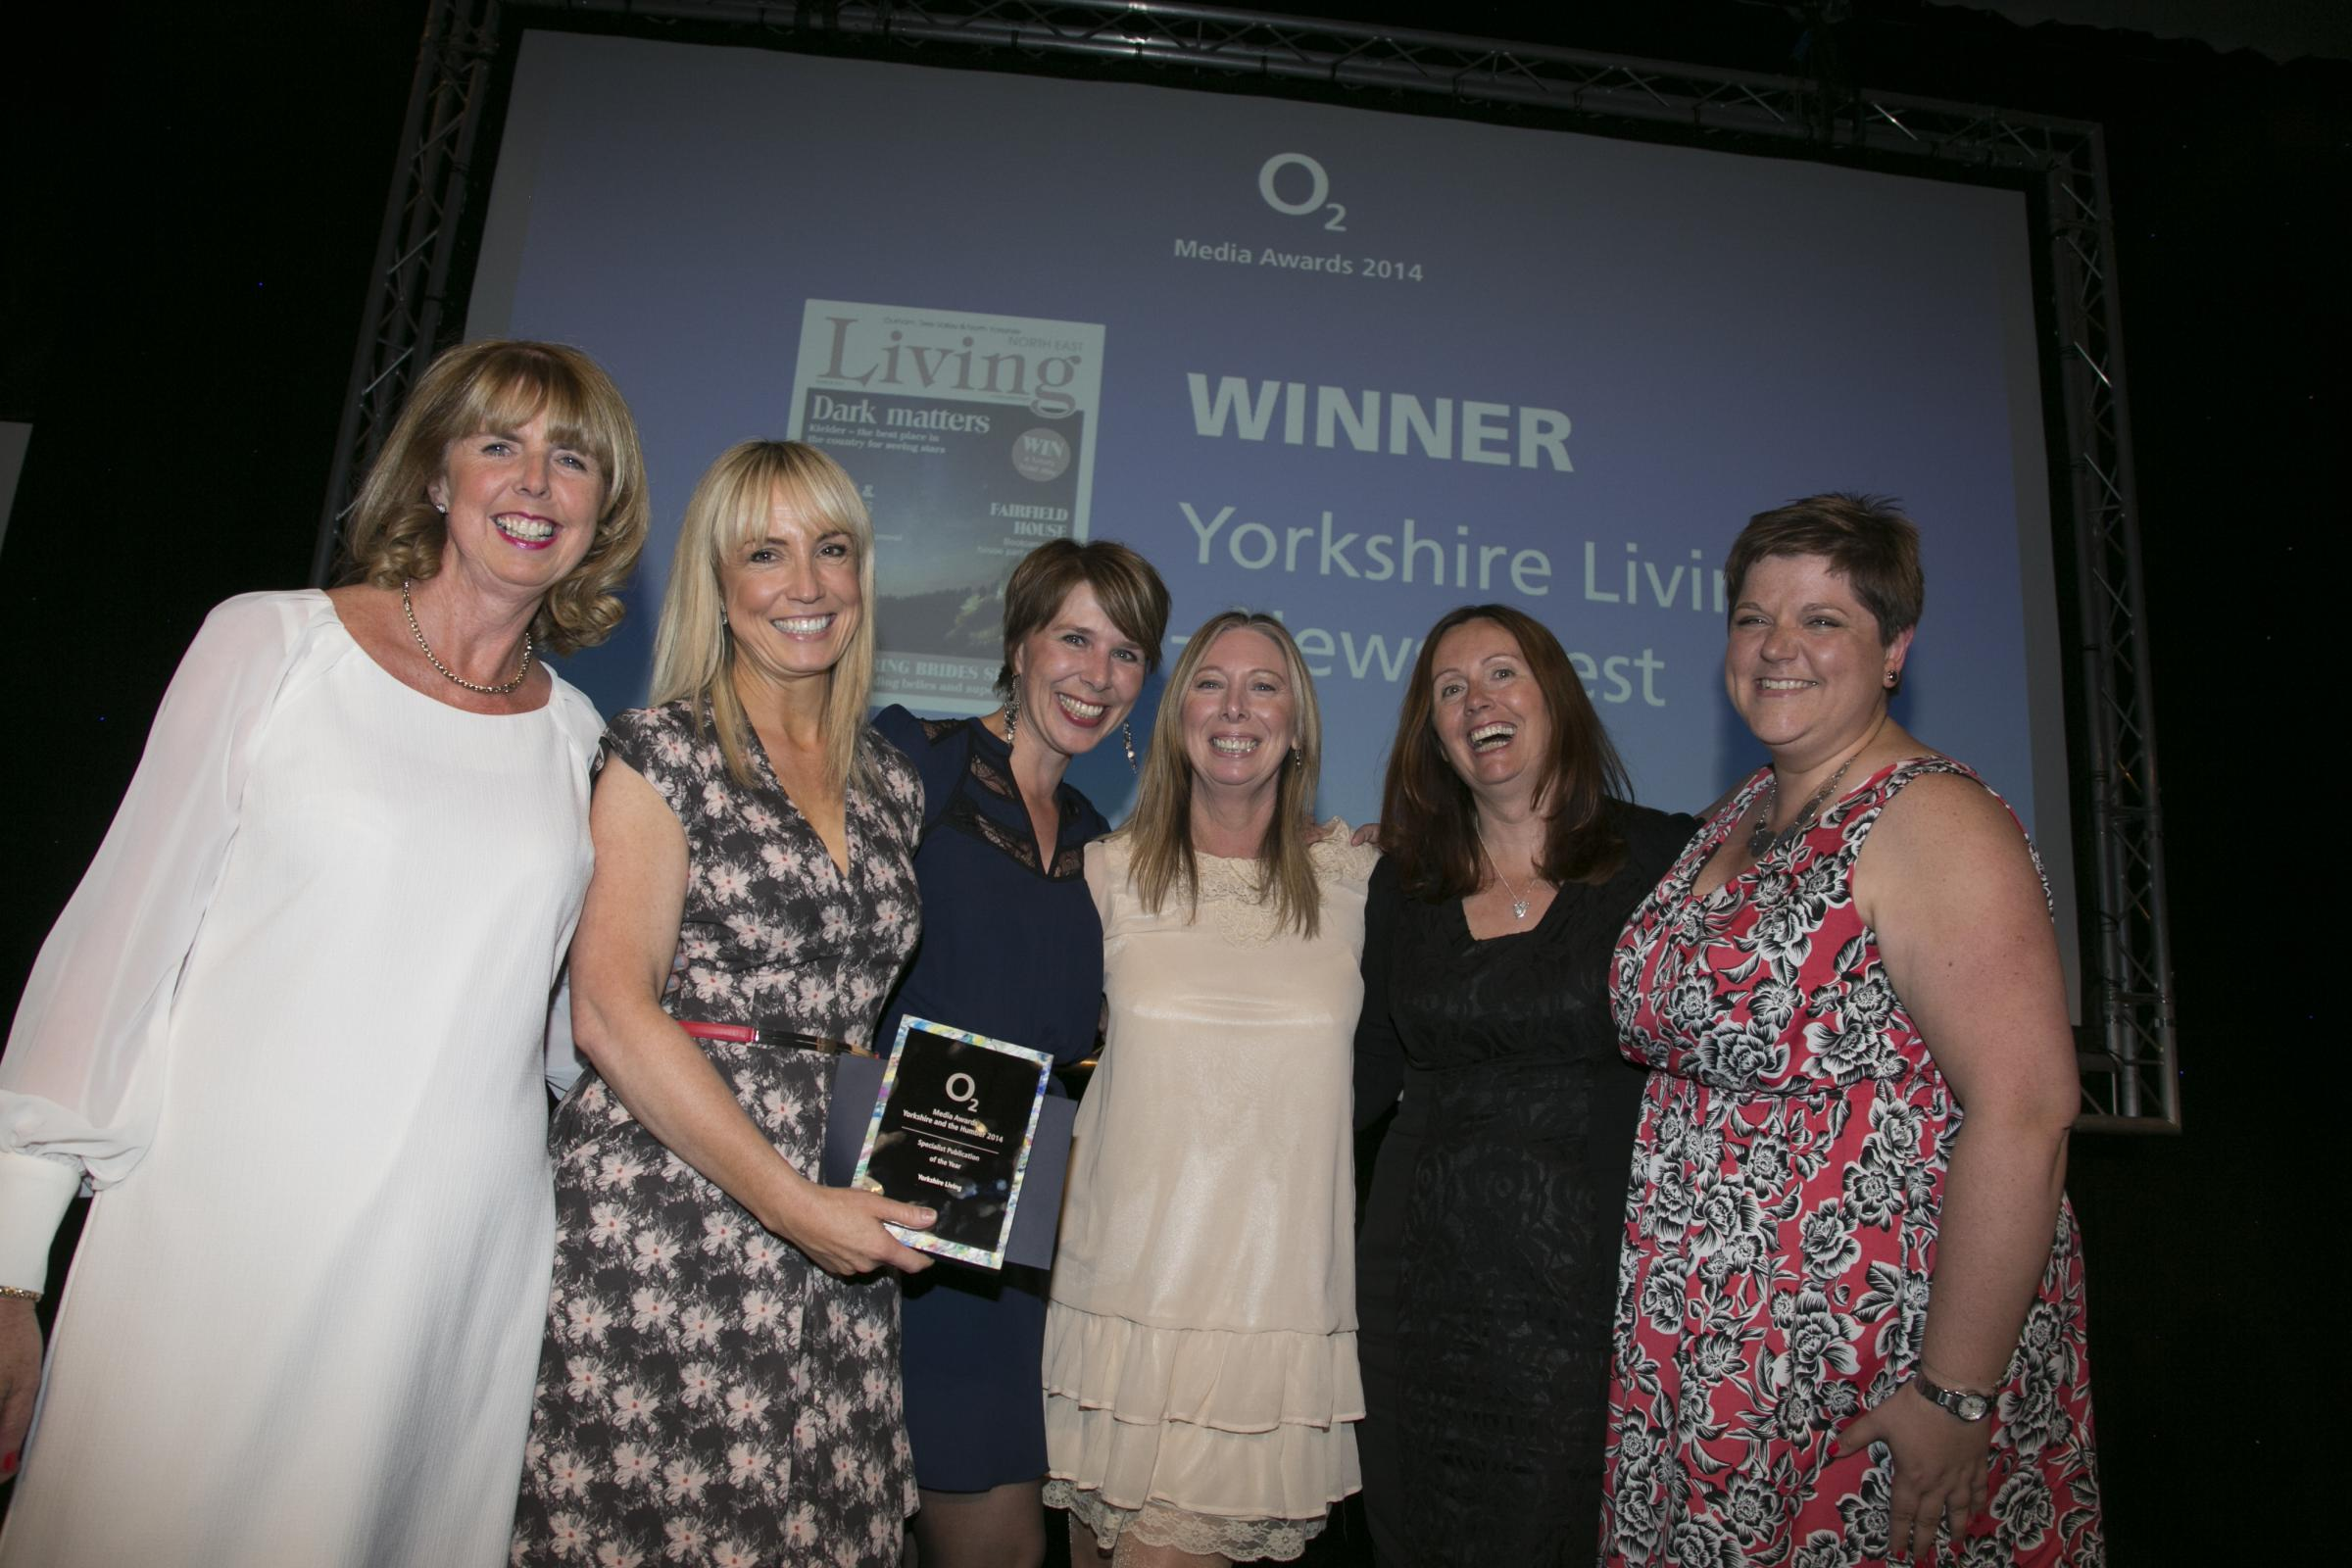 Receiving Yorkshire Living's award from Ann McCracken, O2 Communications North, are: Jenny Thompson, Publisher; Maxine Gordon, Feature Writer; Sue Mayman, Advertising Executive; Francine Clee, Editor, and Becky Cheeseman, Designer